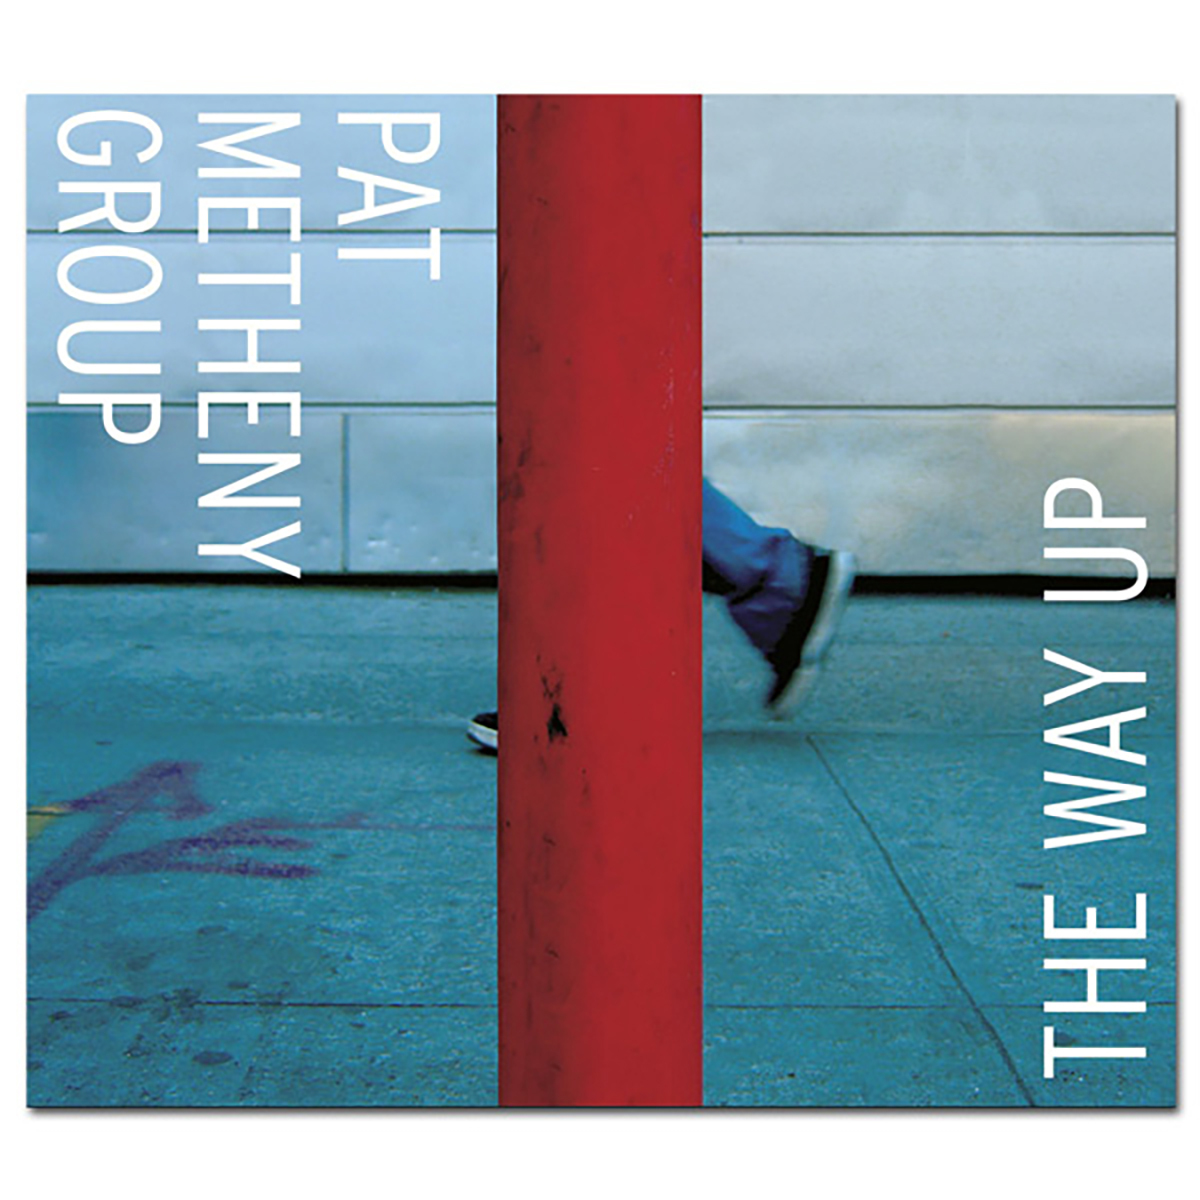 Pat Metheny - The Way Up CD